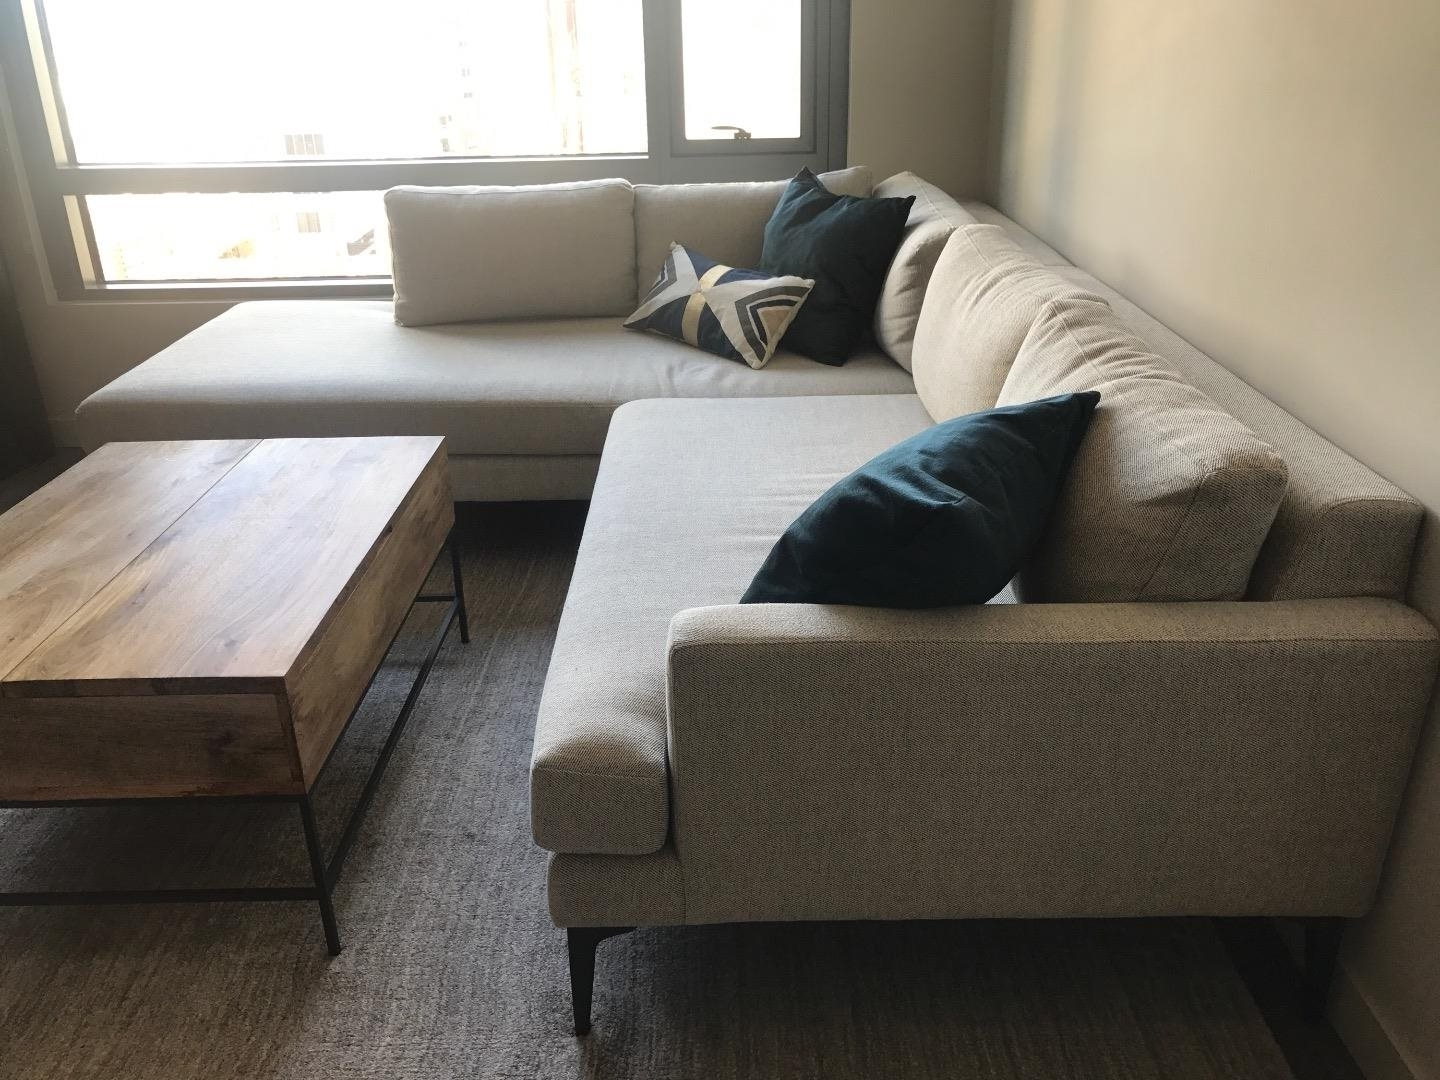 West Elm Andes Terminal Chaise Sectional Couch: For Sale In San Pertaining To Favorite West Elm Chaises (View 11 of 15)